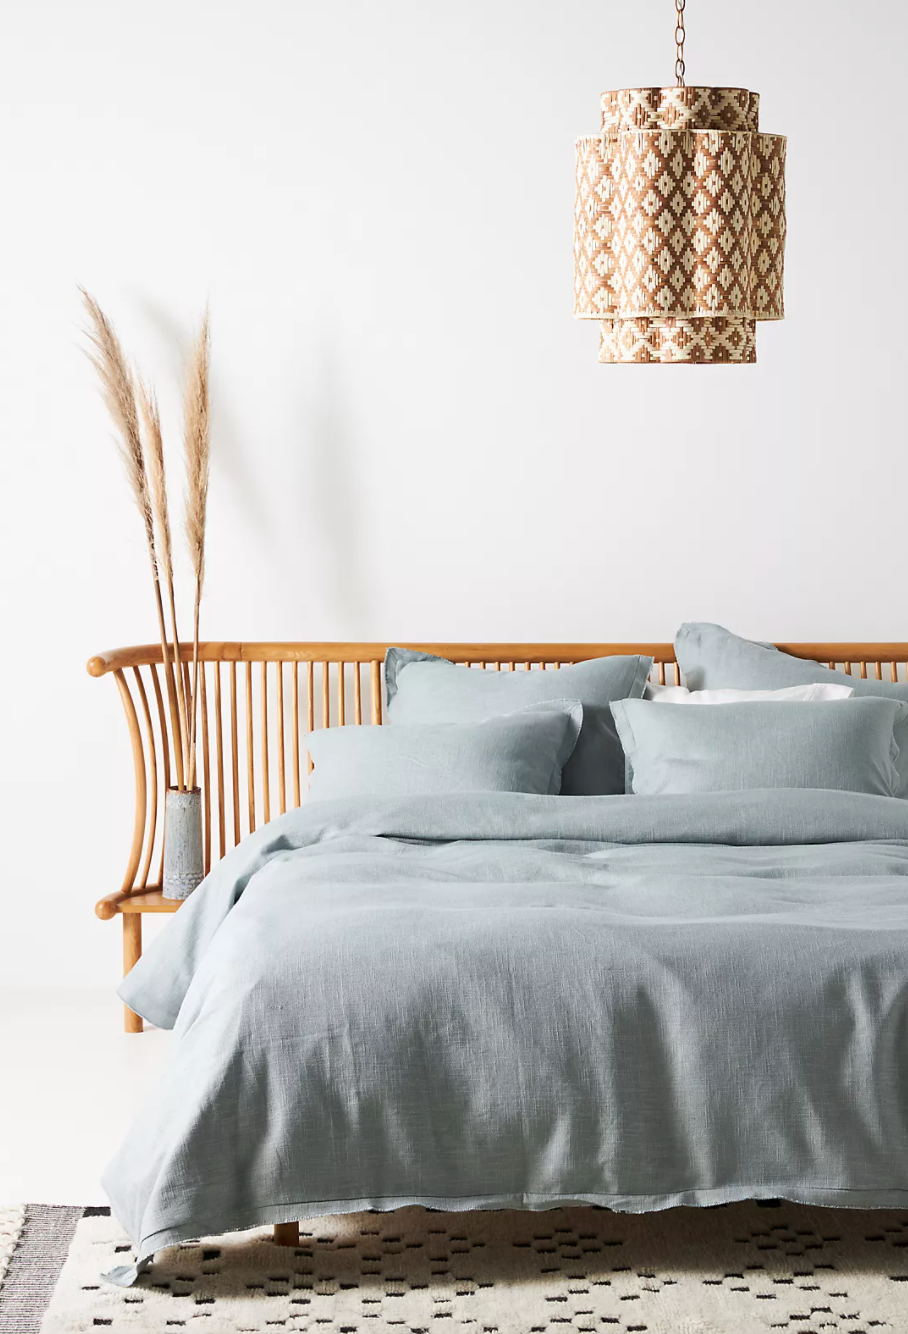 "<h2>Anthropologie</h2><br><h3>Best Bedding Deals</h3><br><strong>Sale</strong>: 20% Off full-price bedding, pillows, and throws<br><strong>Dates</strong>: Now - Limited Time<br><br>It's a sale-a-palooza over on Anthropologie's site this weekend. We're most excited about taking 20% off bestselling, full-priced bedding essentials, but we also might wander over to its <a href=""https://www.anthropologie.com/sale-all"" rel=""nofollow noopener"" target=""_blank"" data-ylk=""slk:clearance section"" class=""link rapid-noclick-resp"">clearance section</a> that's an extra 25% off. The choice is yours.<br><br><em>Shop</em> <strong><em><a href=""https://www.anthropologie.com/bedding/"" rel=""nofollow noopener"" target=""_blank"" data-ylk=""slk:Anthropologie"" class=""link rapid-noclick-resp"">Anthropologie</a></em></strong><br><br><strong>Anthropologie</strong> Luxe Linen Blend Duvet Cover, $, available at <a href=""https://go.skimresources.com/?id=30283X879131&url=https%3A%2F%2Fwww.anthropologie.com%2Fshop%2Fluxe-linen-blend-duvet-cover"" rel=""nofollow noopener"" target=""_blank"" data-ylk=""slk:Anthropologie"" class=""link rapid-noclick-resp"">Anthropologie</a>"